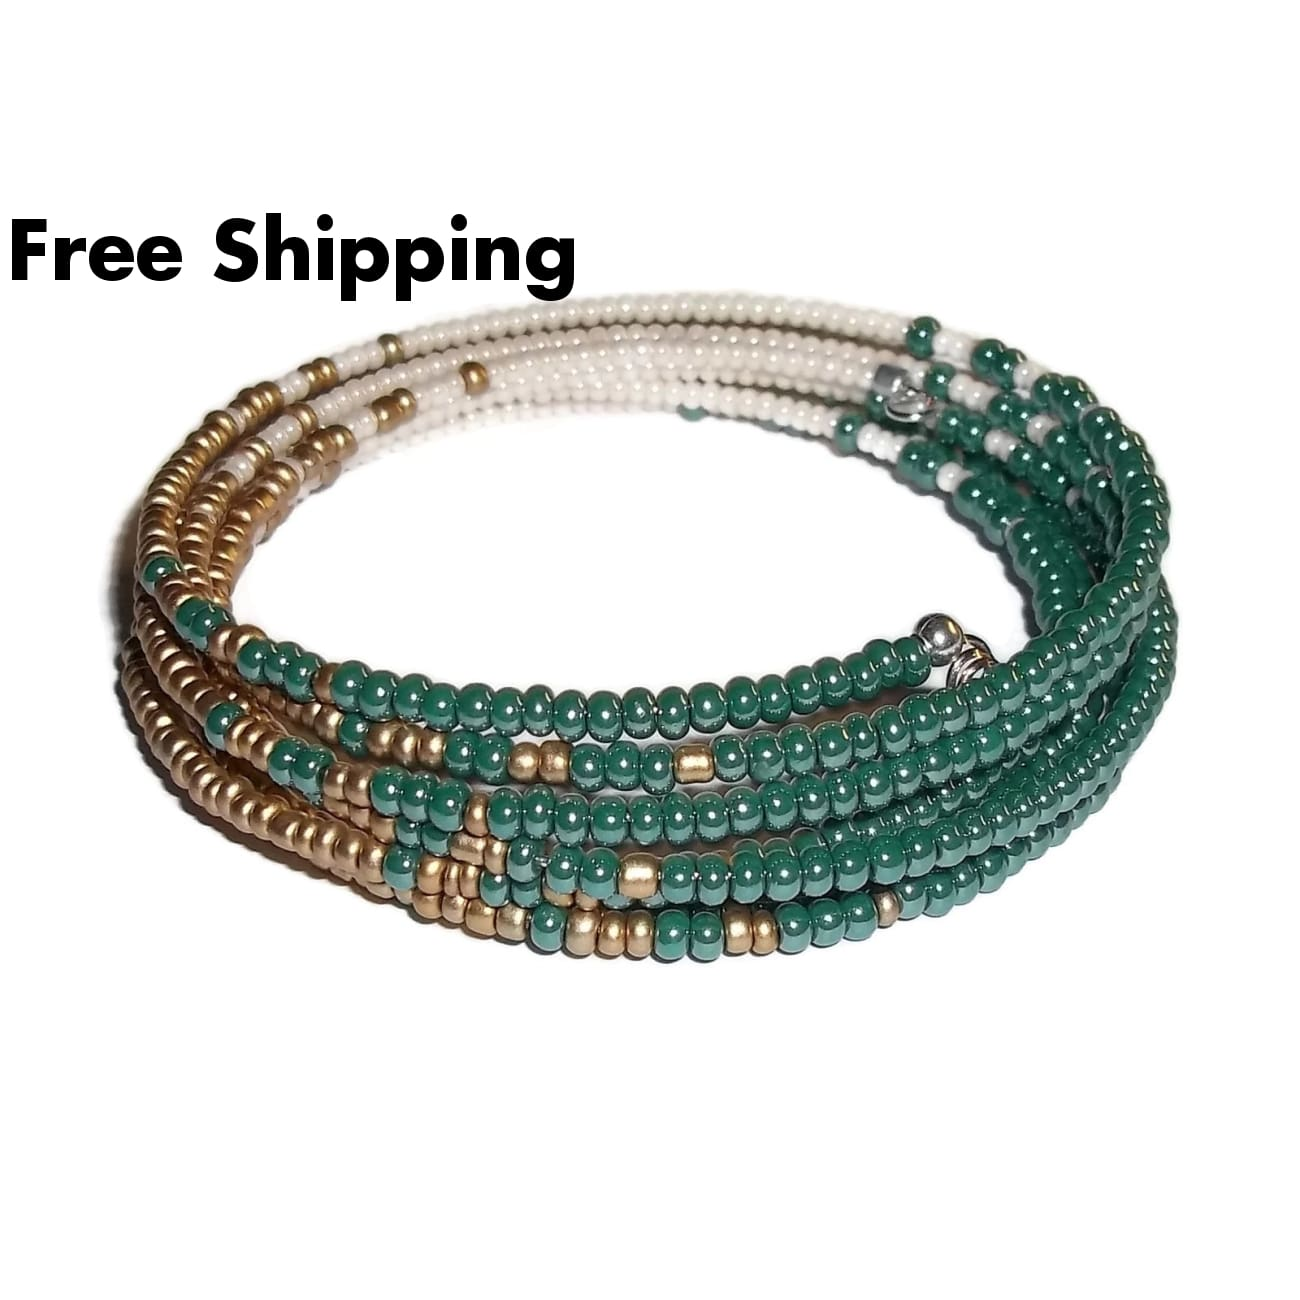 Teal Gold & Cream Glass Beaded Artisan Crafted Wrap Statement Bracelet (Xs-S) - New Arrival